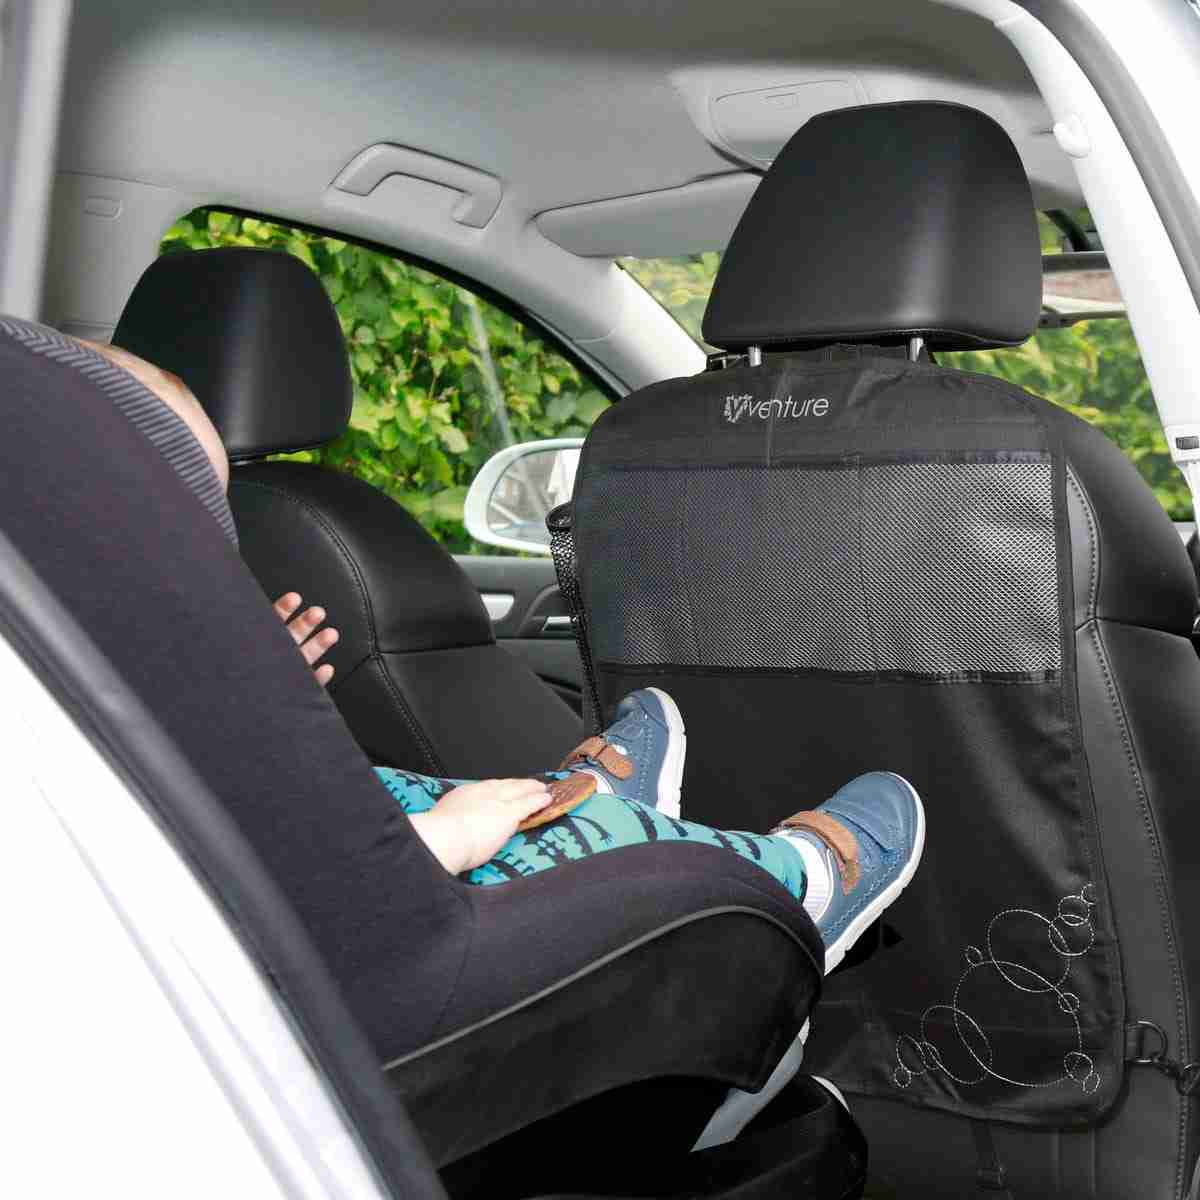 Venture Kick mats protect your car seats from marks and scuffs